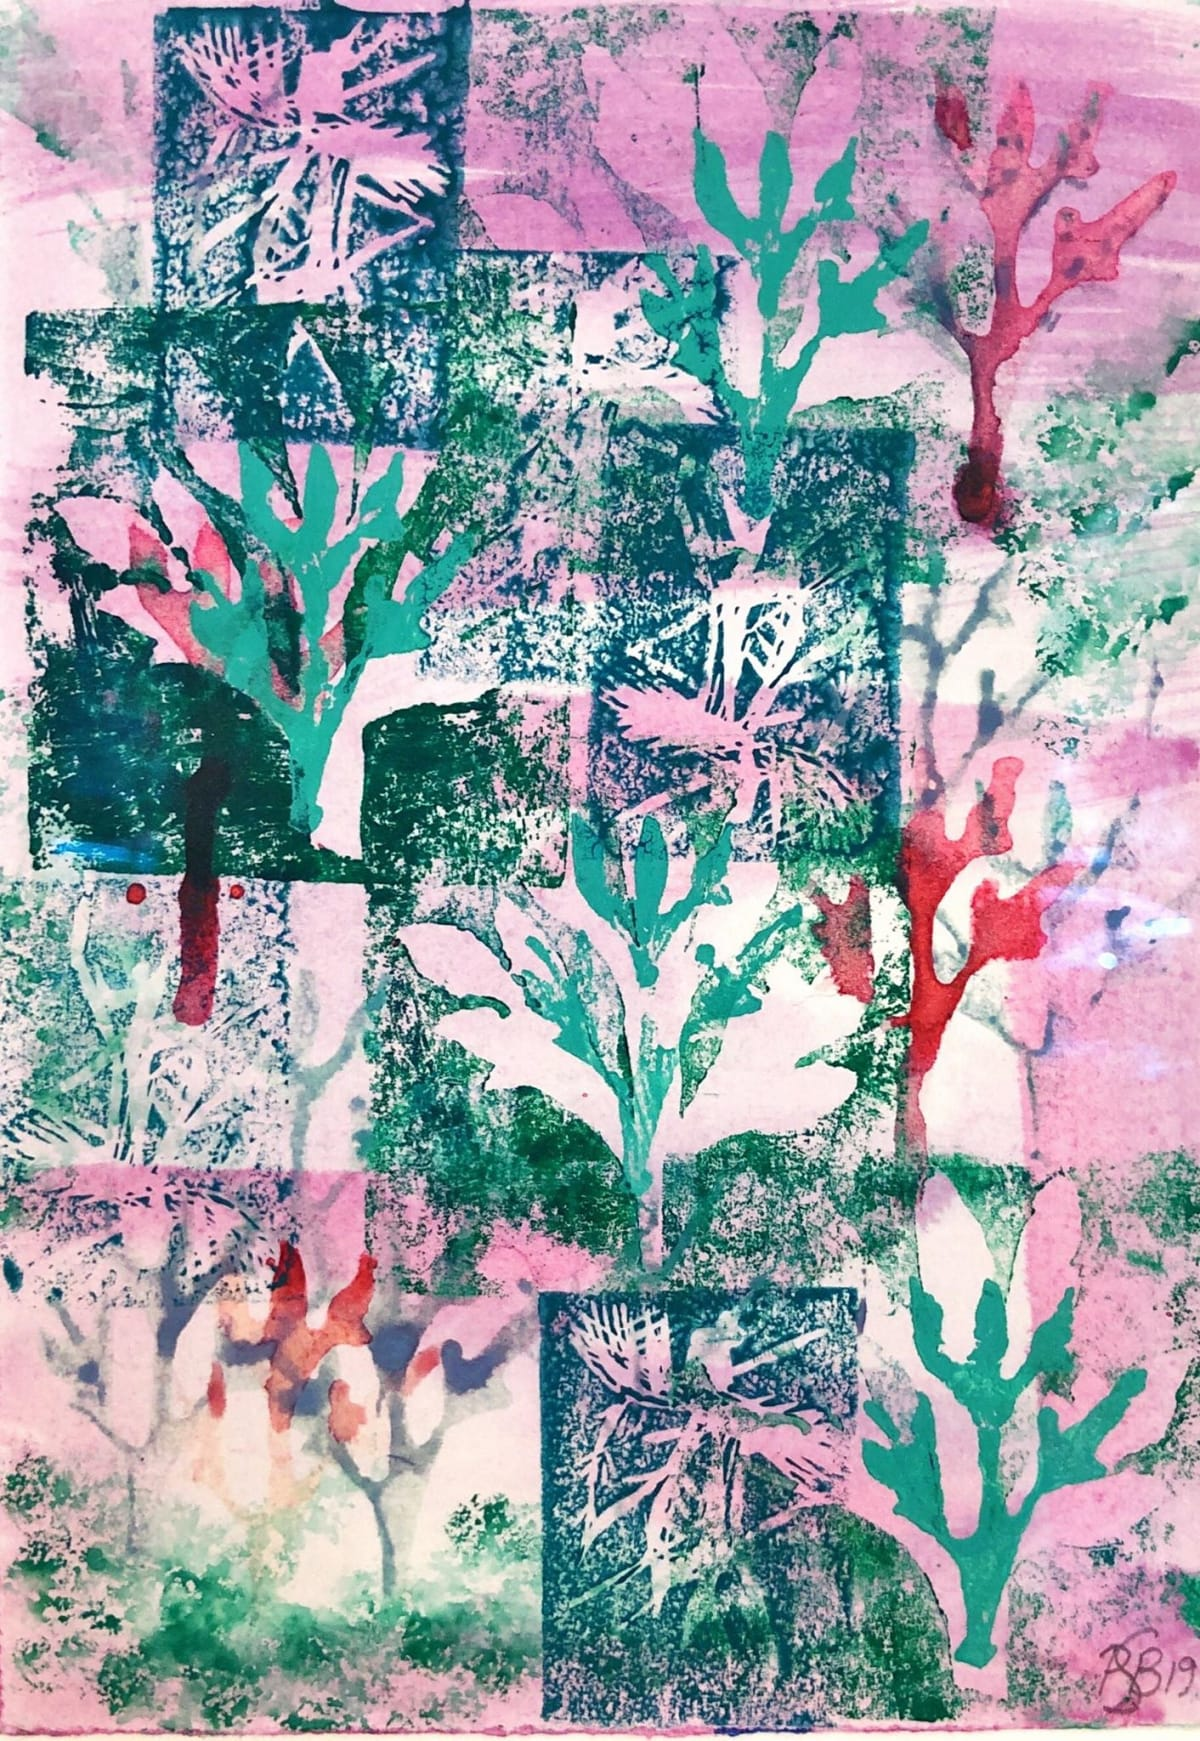 Putney School of Art and Design, Penny Bousfield, Artemisia and Anopheles (Pink)